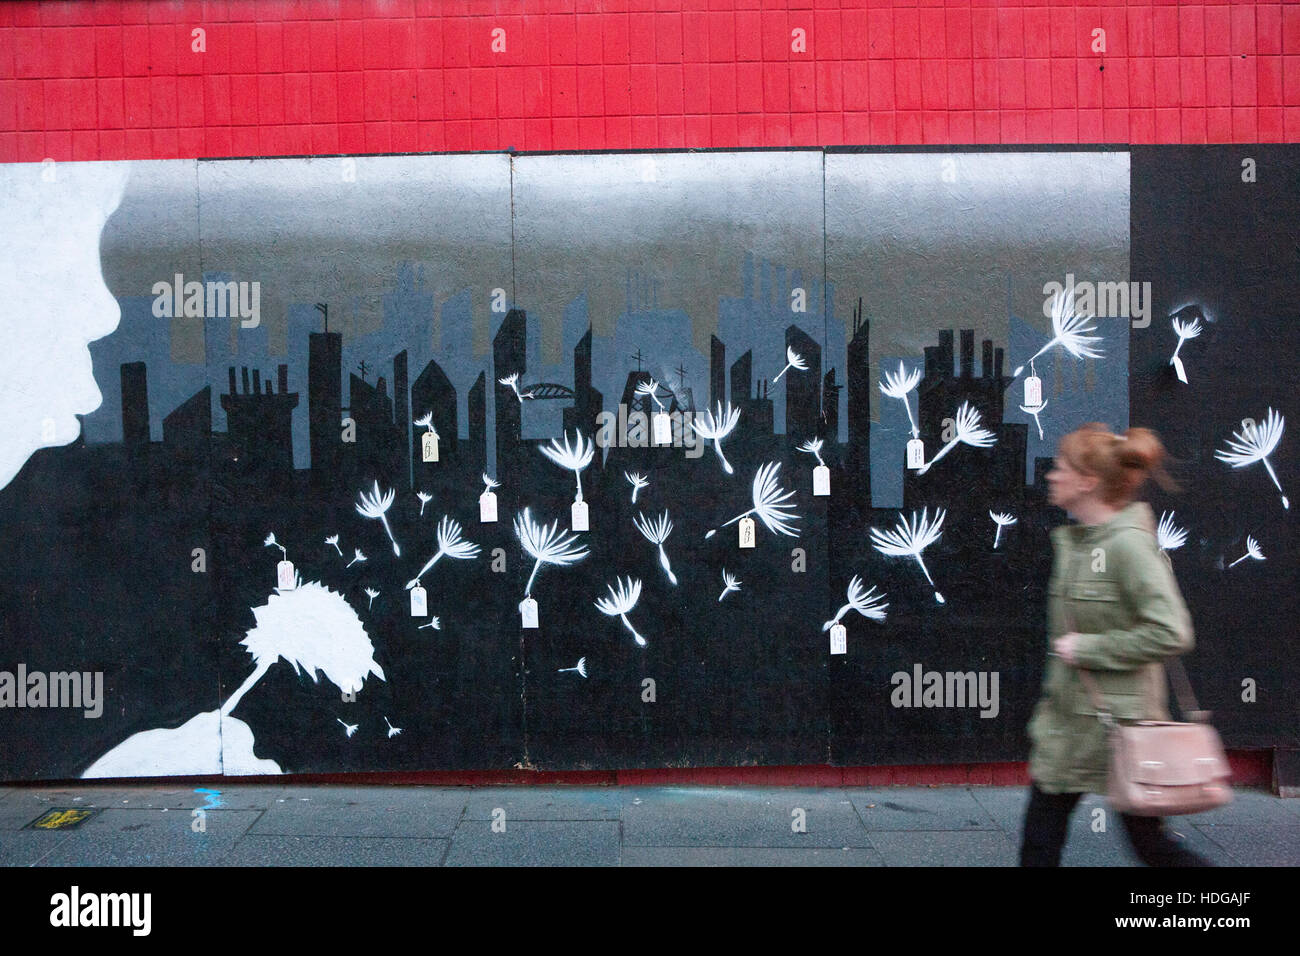 Child Labour Protest art on behalf of Amnesty International, on the streets of Derry, Northern Ireland. - Stock Image